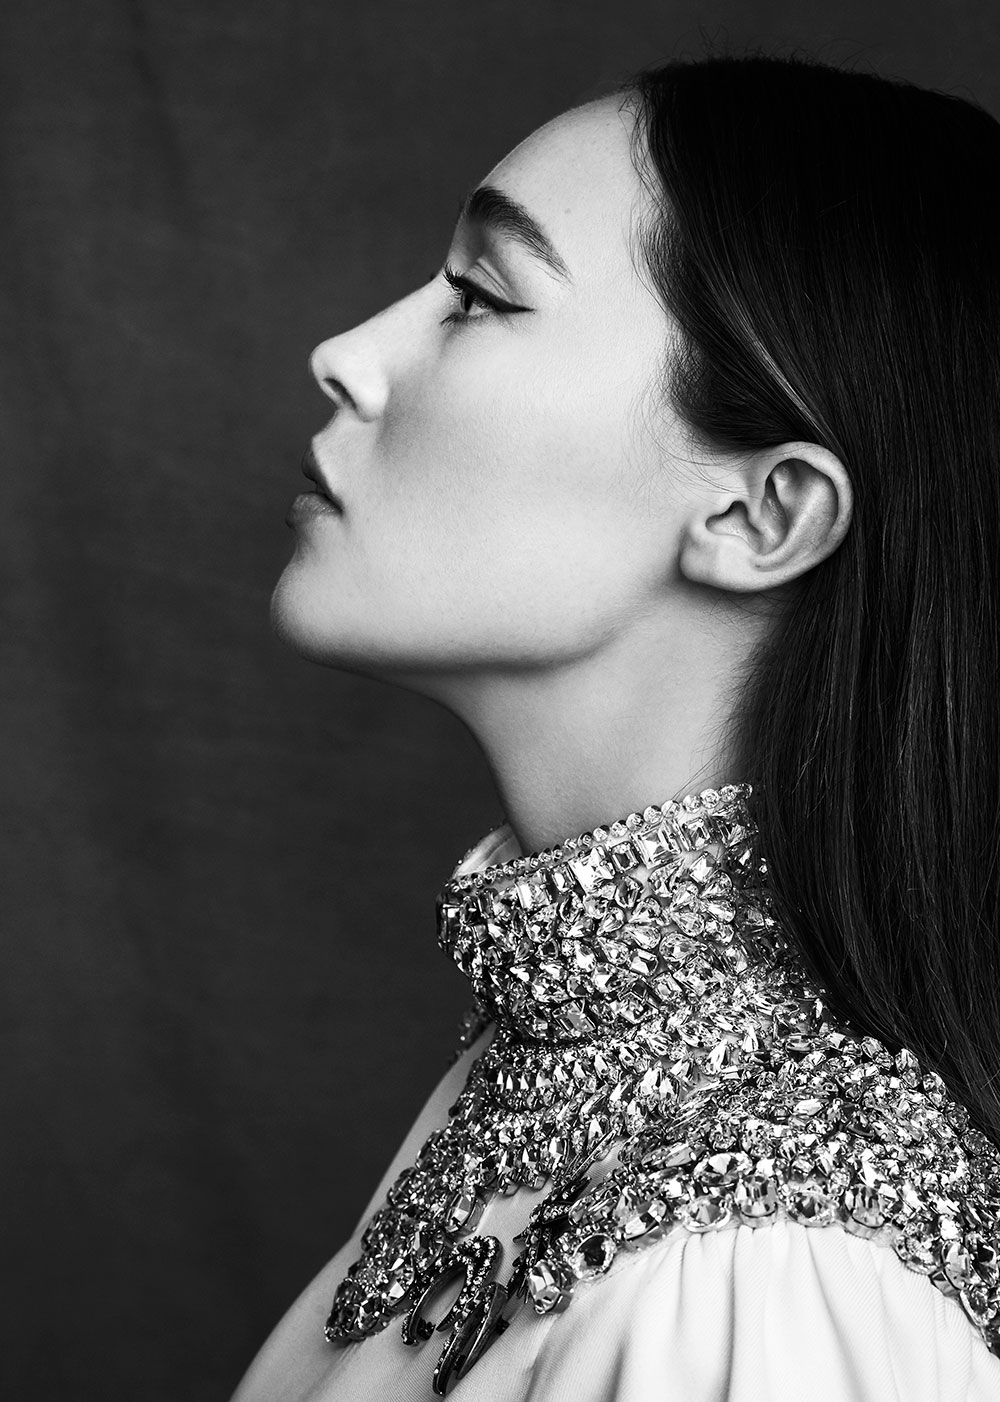 Black and white photo of Alycia Debnam Carey by Max papendieck for MONROWE magazine